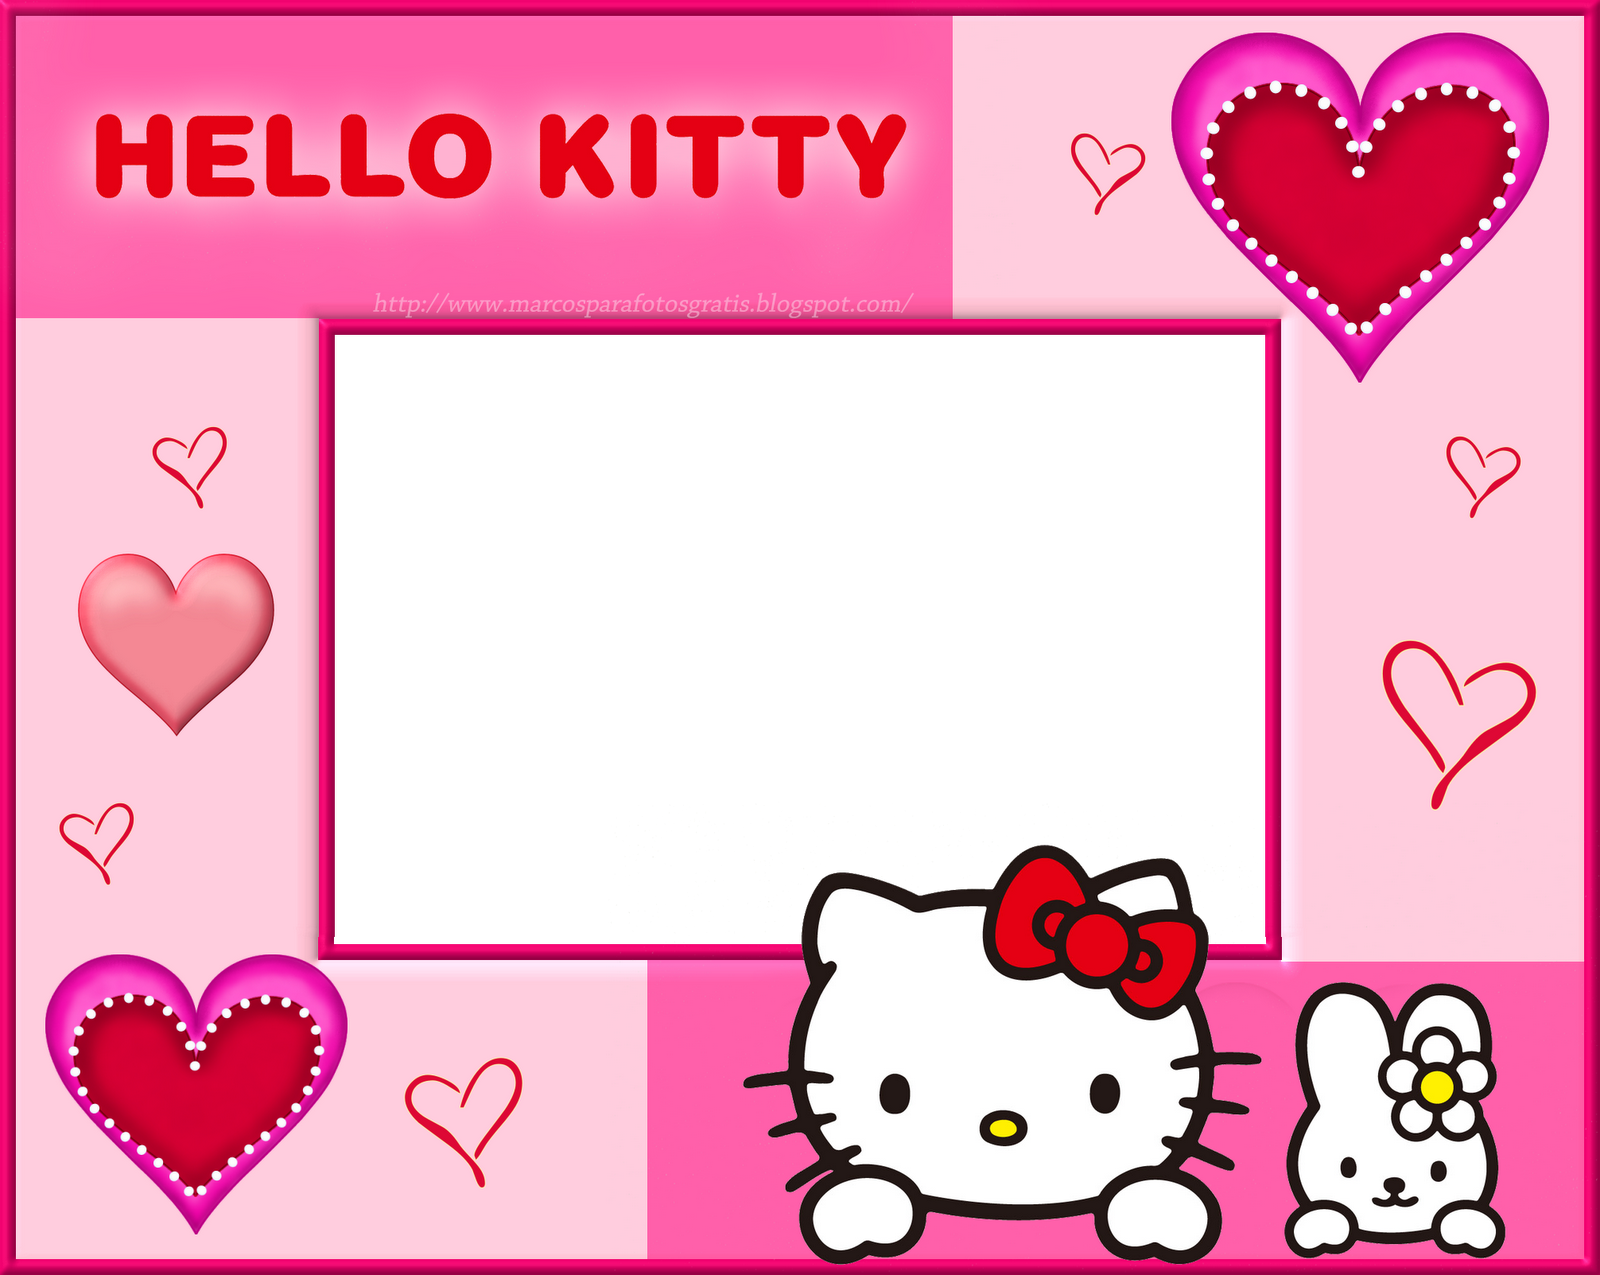 Download image Marcos Para Fotos De Hello Kitty PC, Android, iPhone